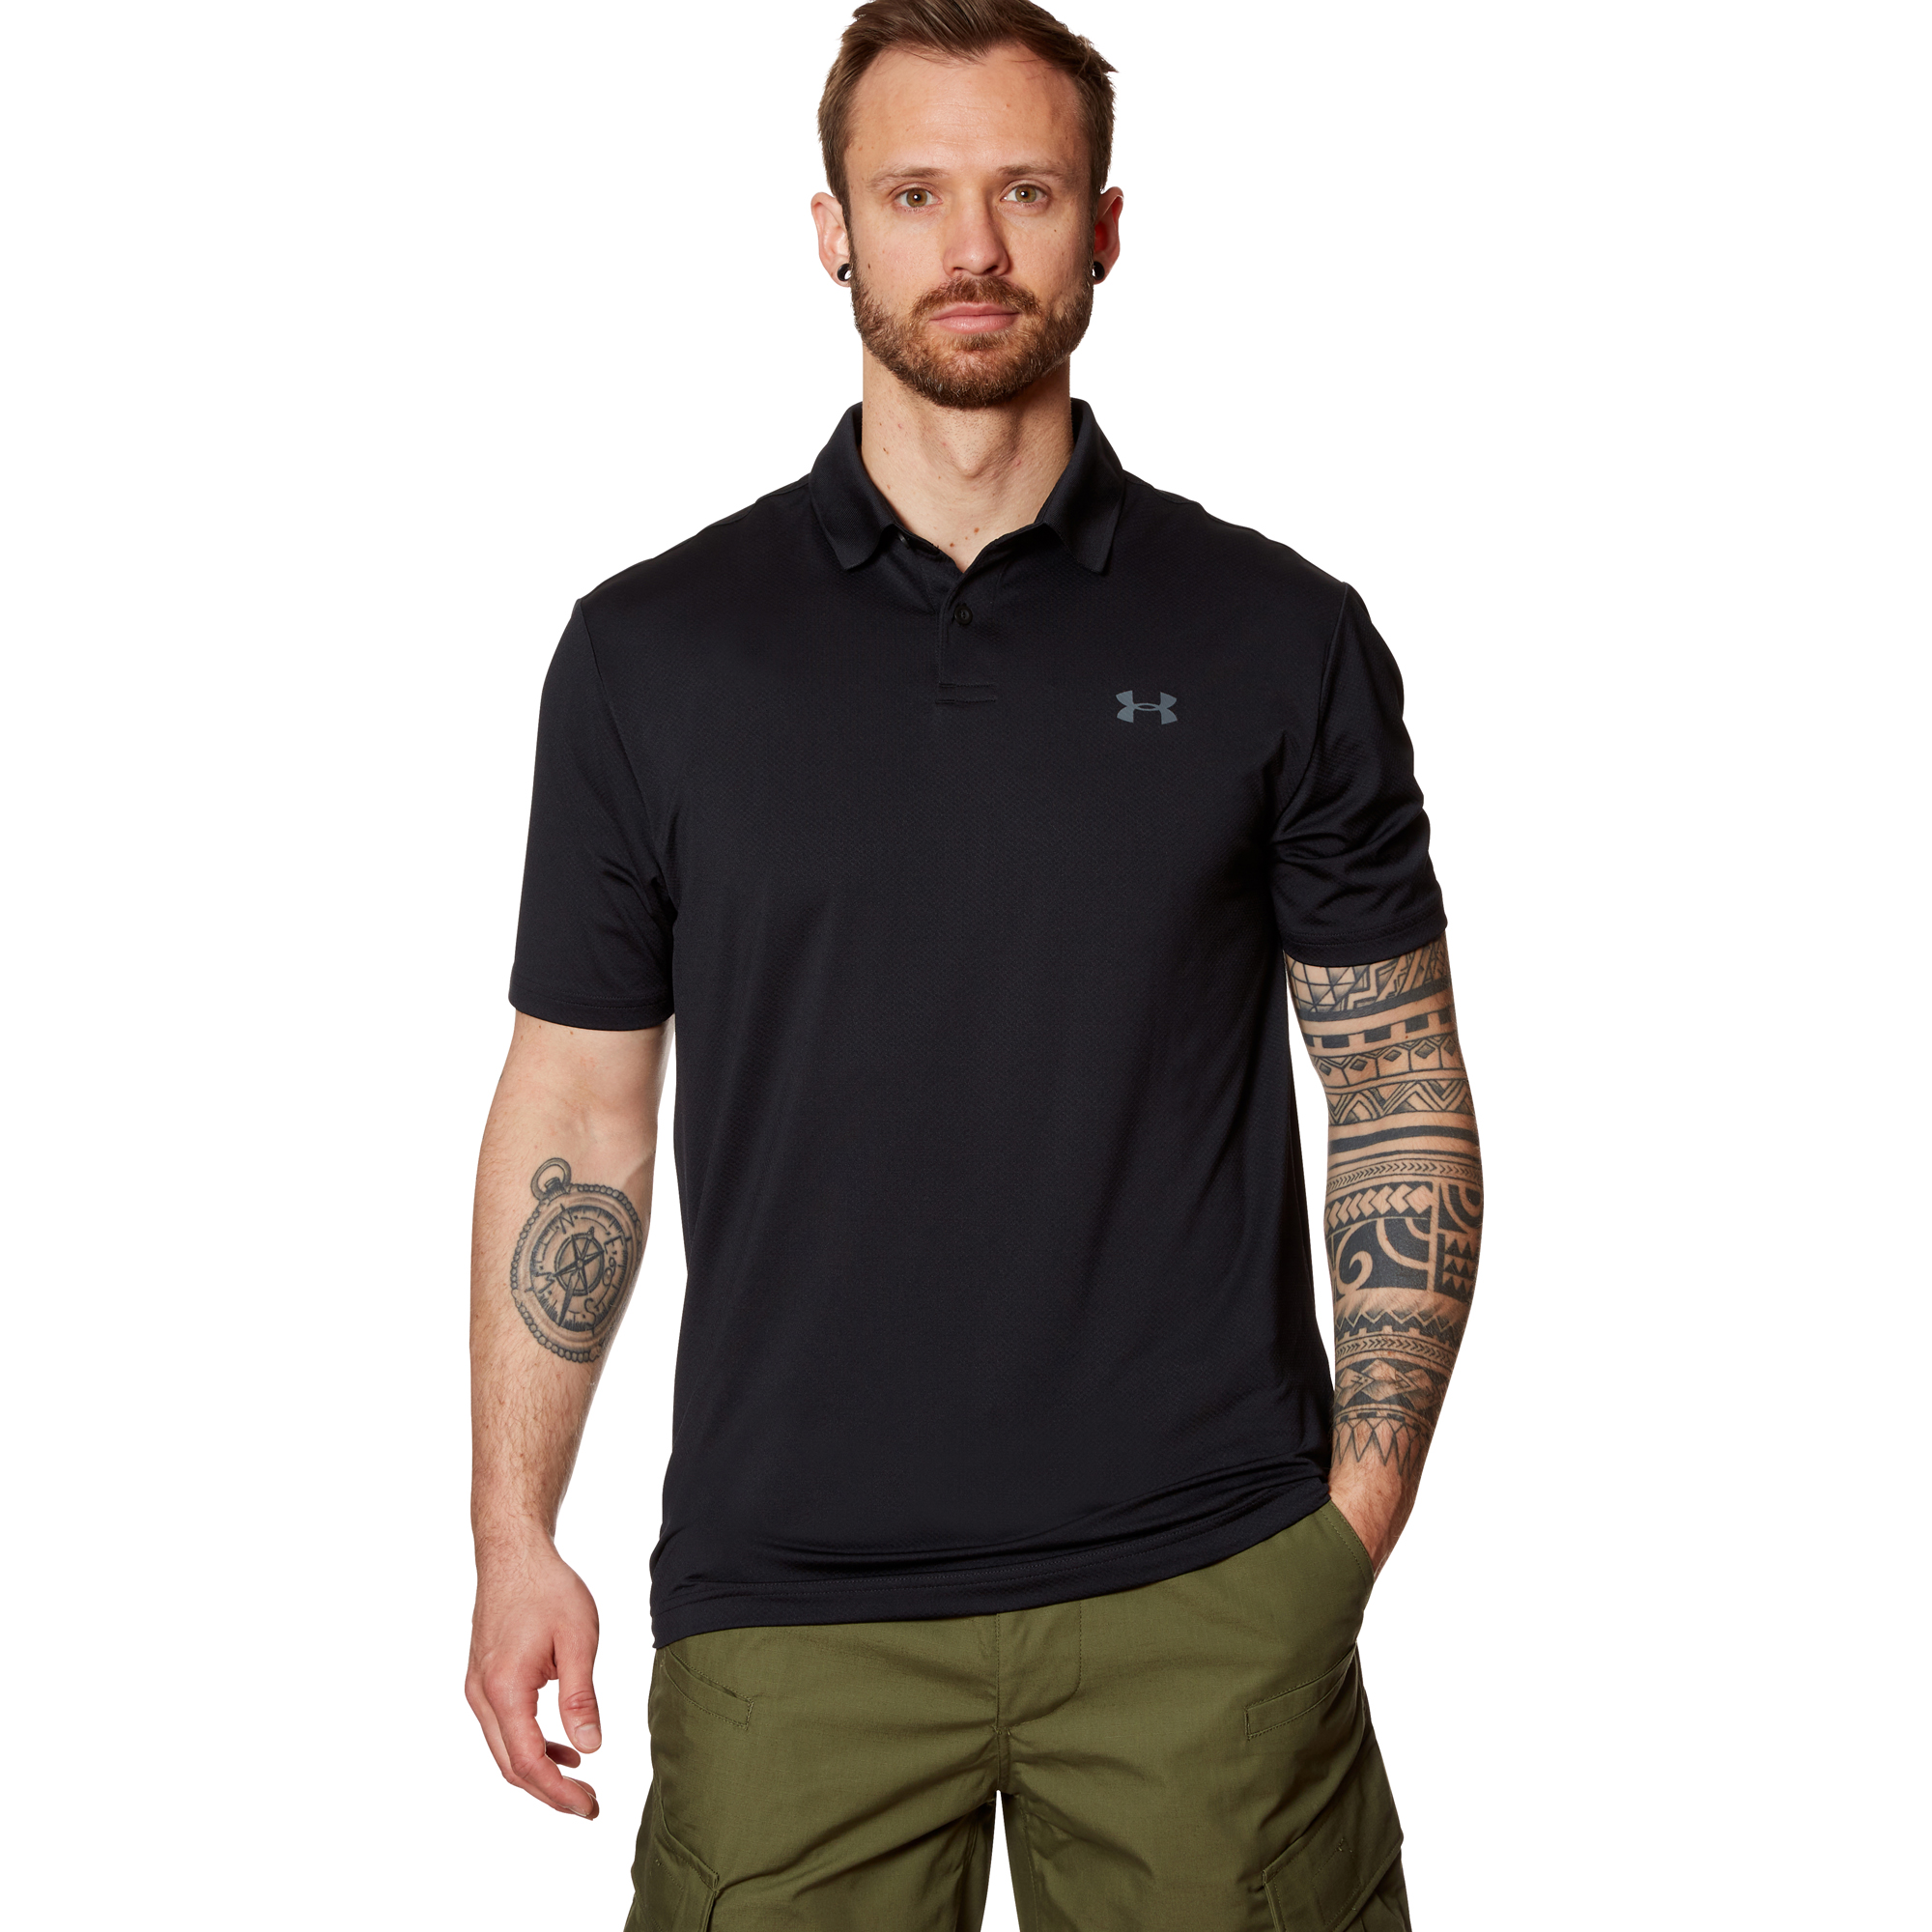 Under Armour Poloshirt Performance 2.0 2019 schwarz